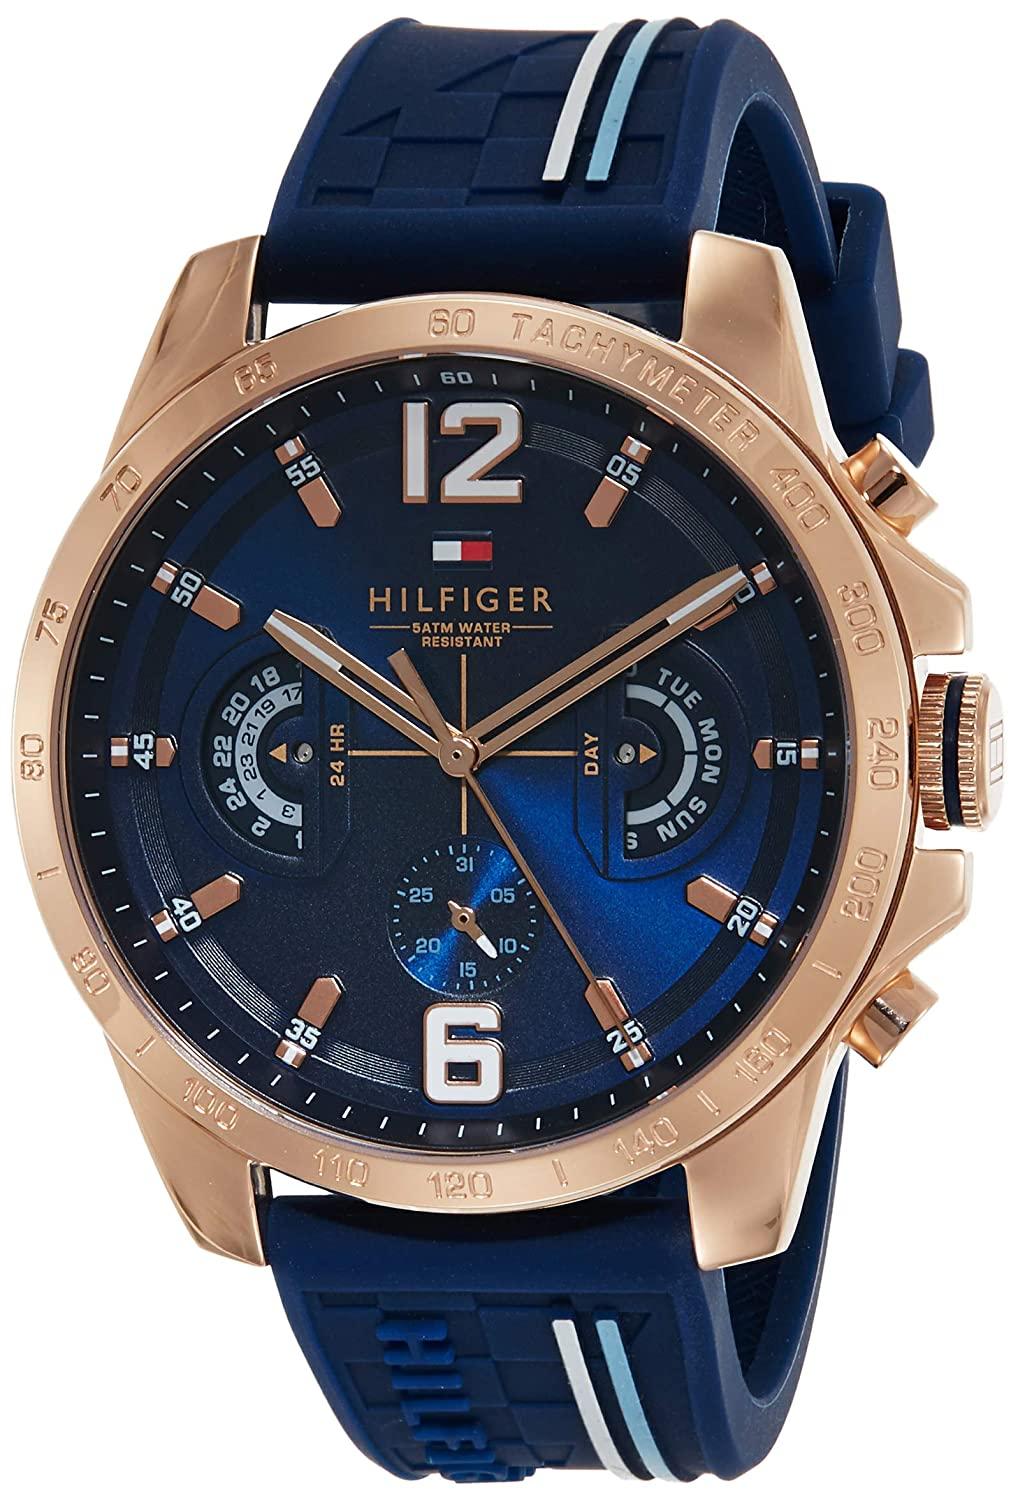 Tommy Hilfiger Analog Blue Dial Men's Watch - TH1791474